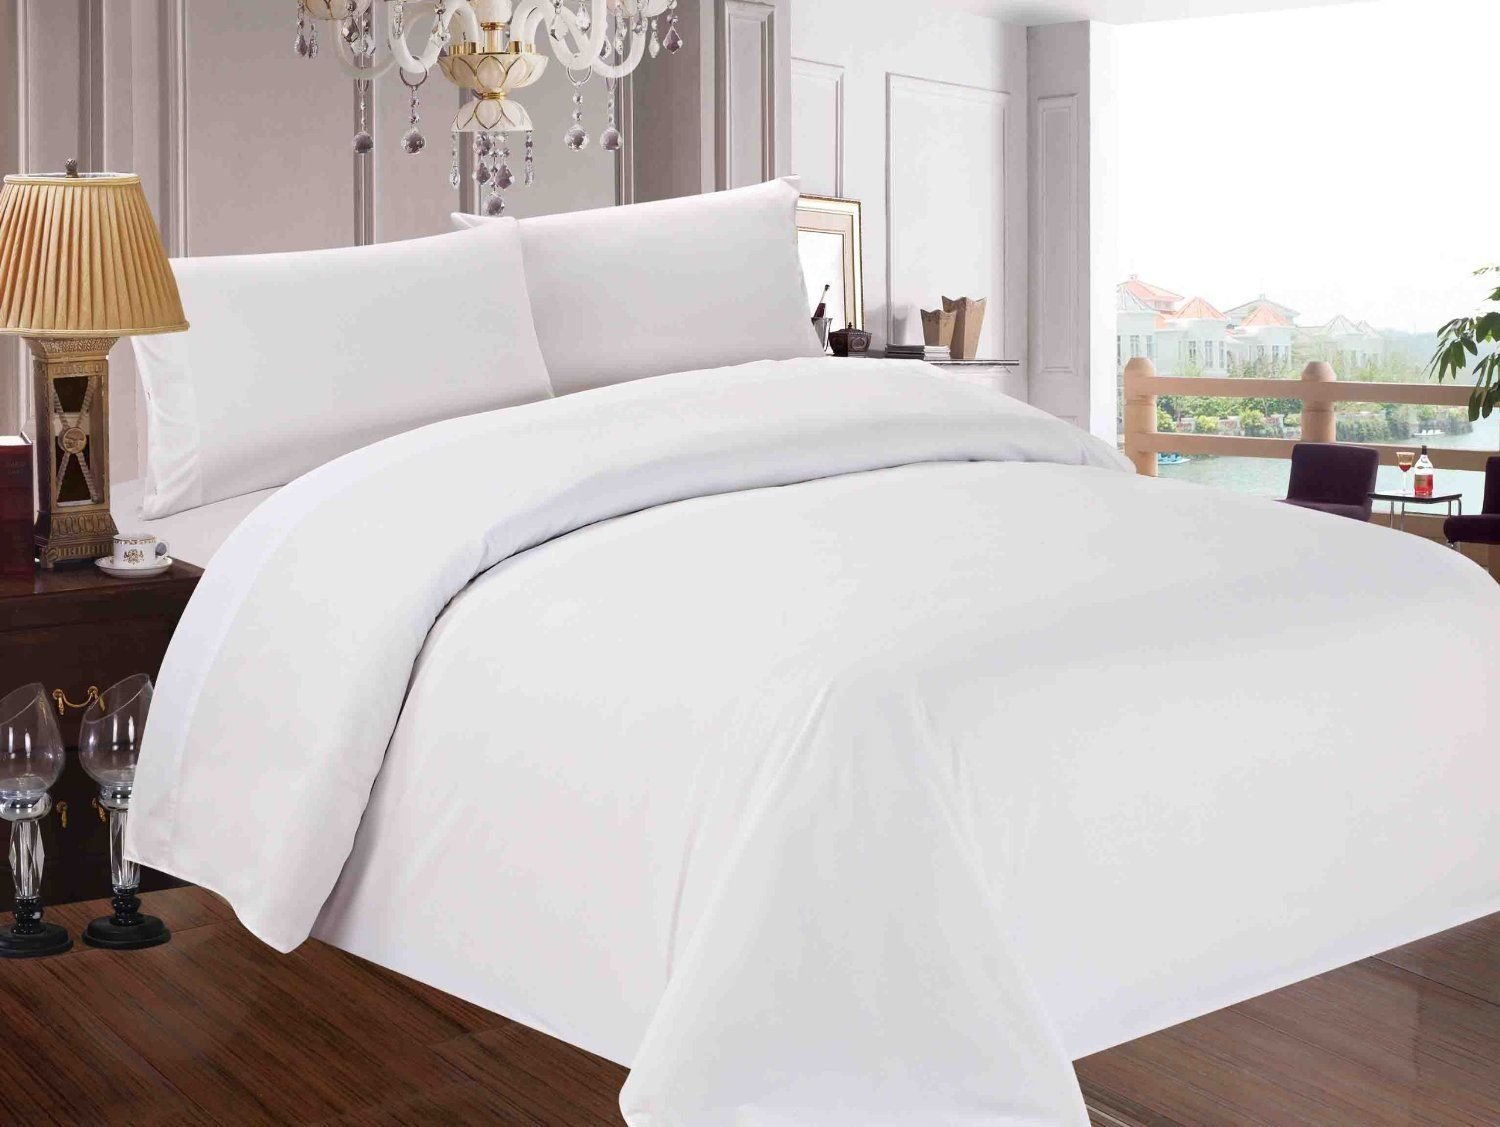 Thread Treasure Premium 1500 Thread Count 100% Egyptian Cotton Ultra Soft 4 Piece Bed Sheet Set Hotel Quality 1500TC Fits Mattress Upto 15'' Deep Pocket (Queen, White)